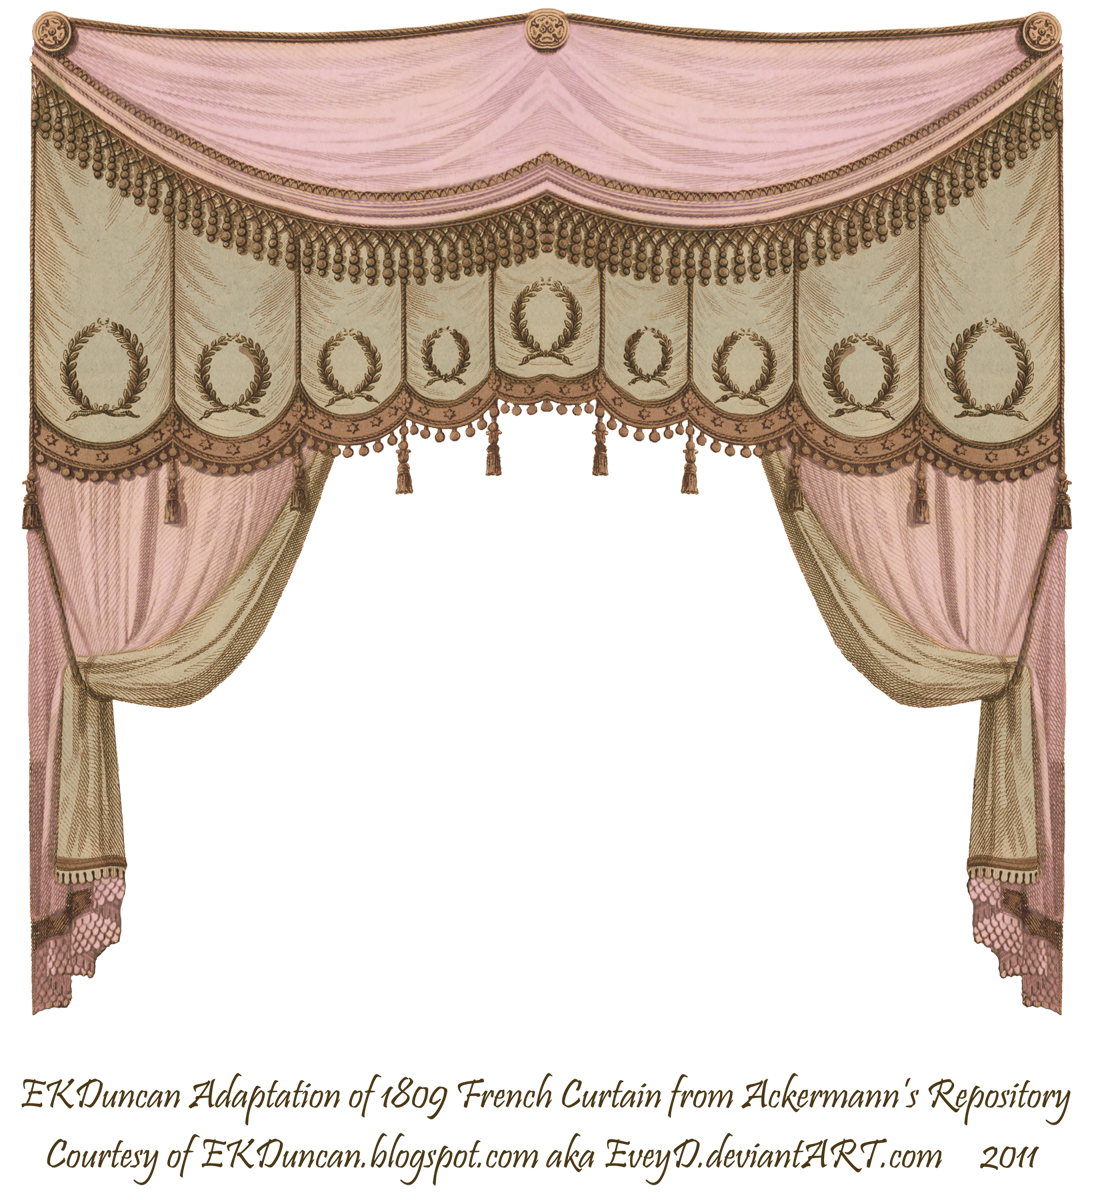 Ekduncan my fanciful muse. Curtains clipart puppet stage png royalty free library